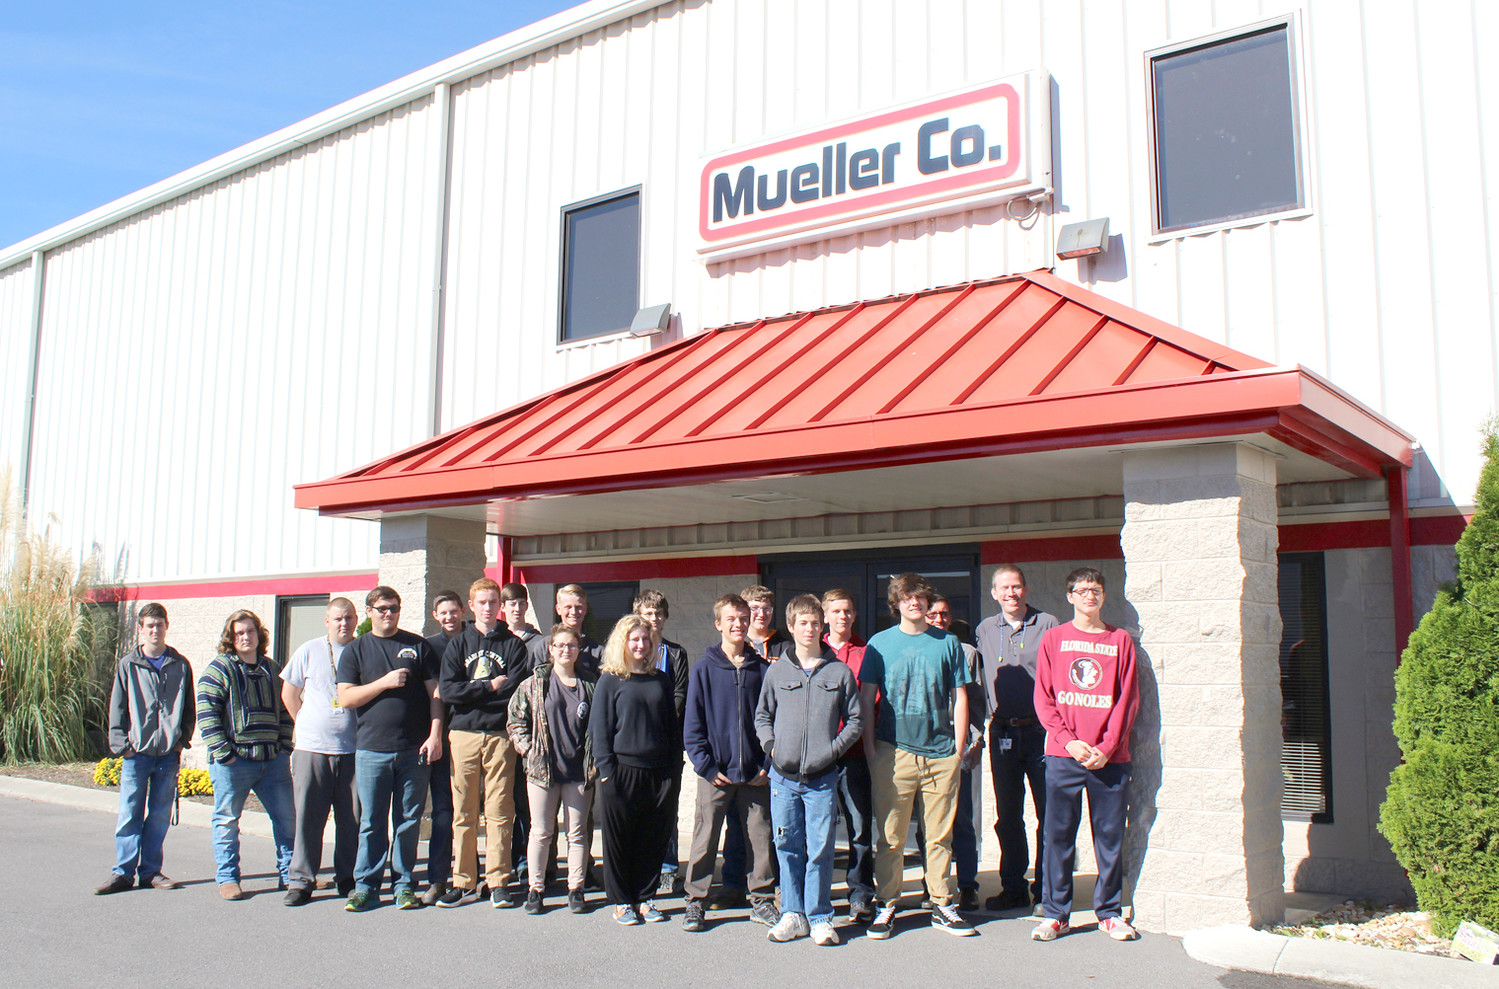 STUDENTS from Shawn Williams' class at Bradley Central High School gather for a photo after touring Mueller Co. The class and the company were paired up for Cleveland Associated Industries' Manufacturing Week.